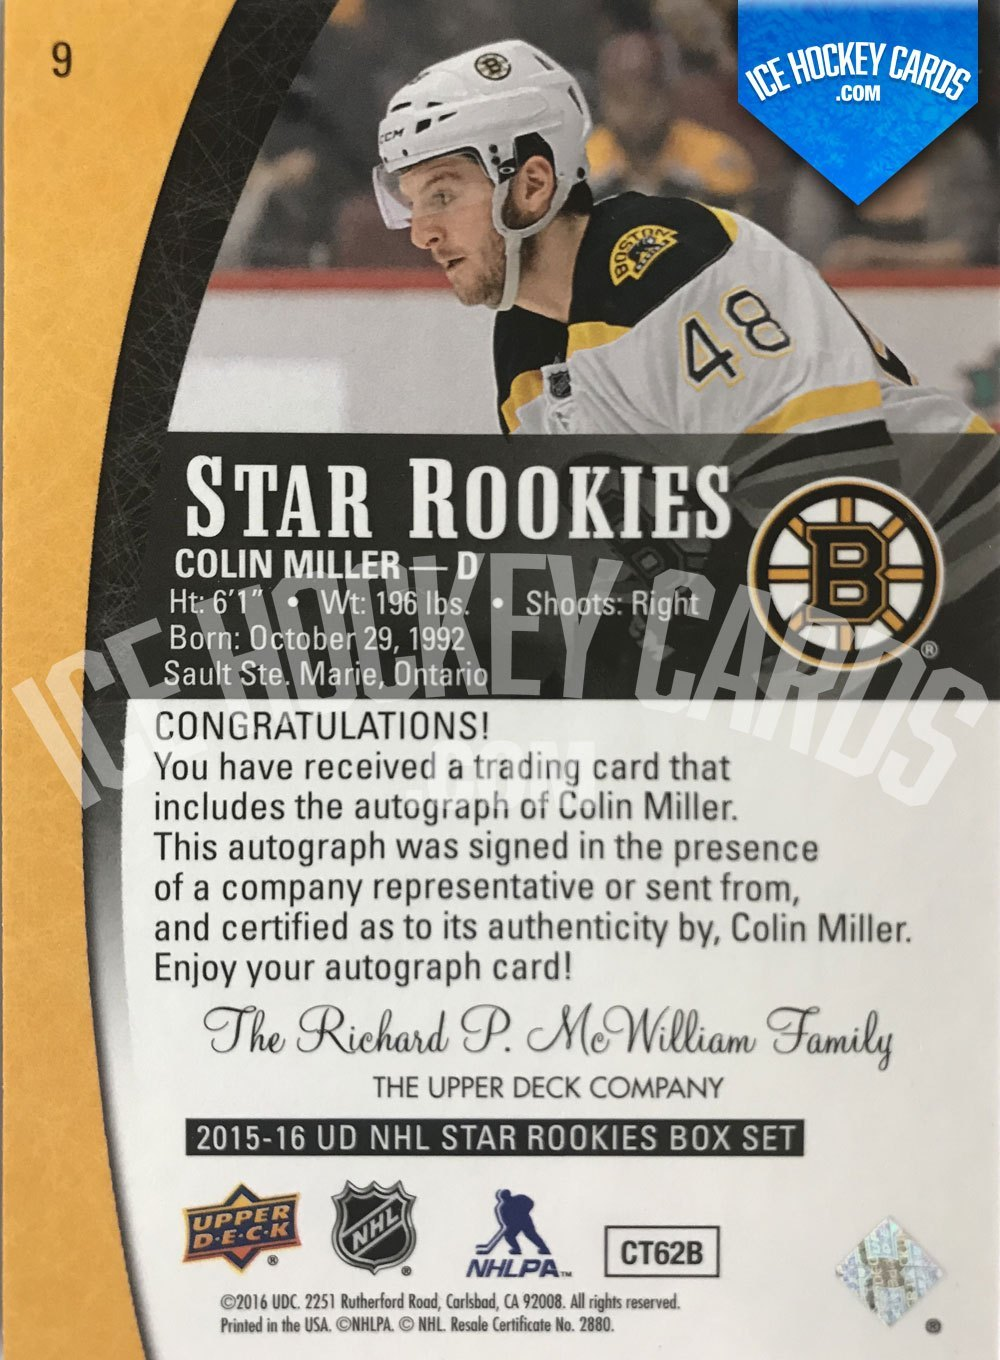 Upper Deck - Star Rookies 15-16 - Colin Miller Autograph Rookie Card